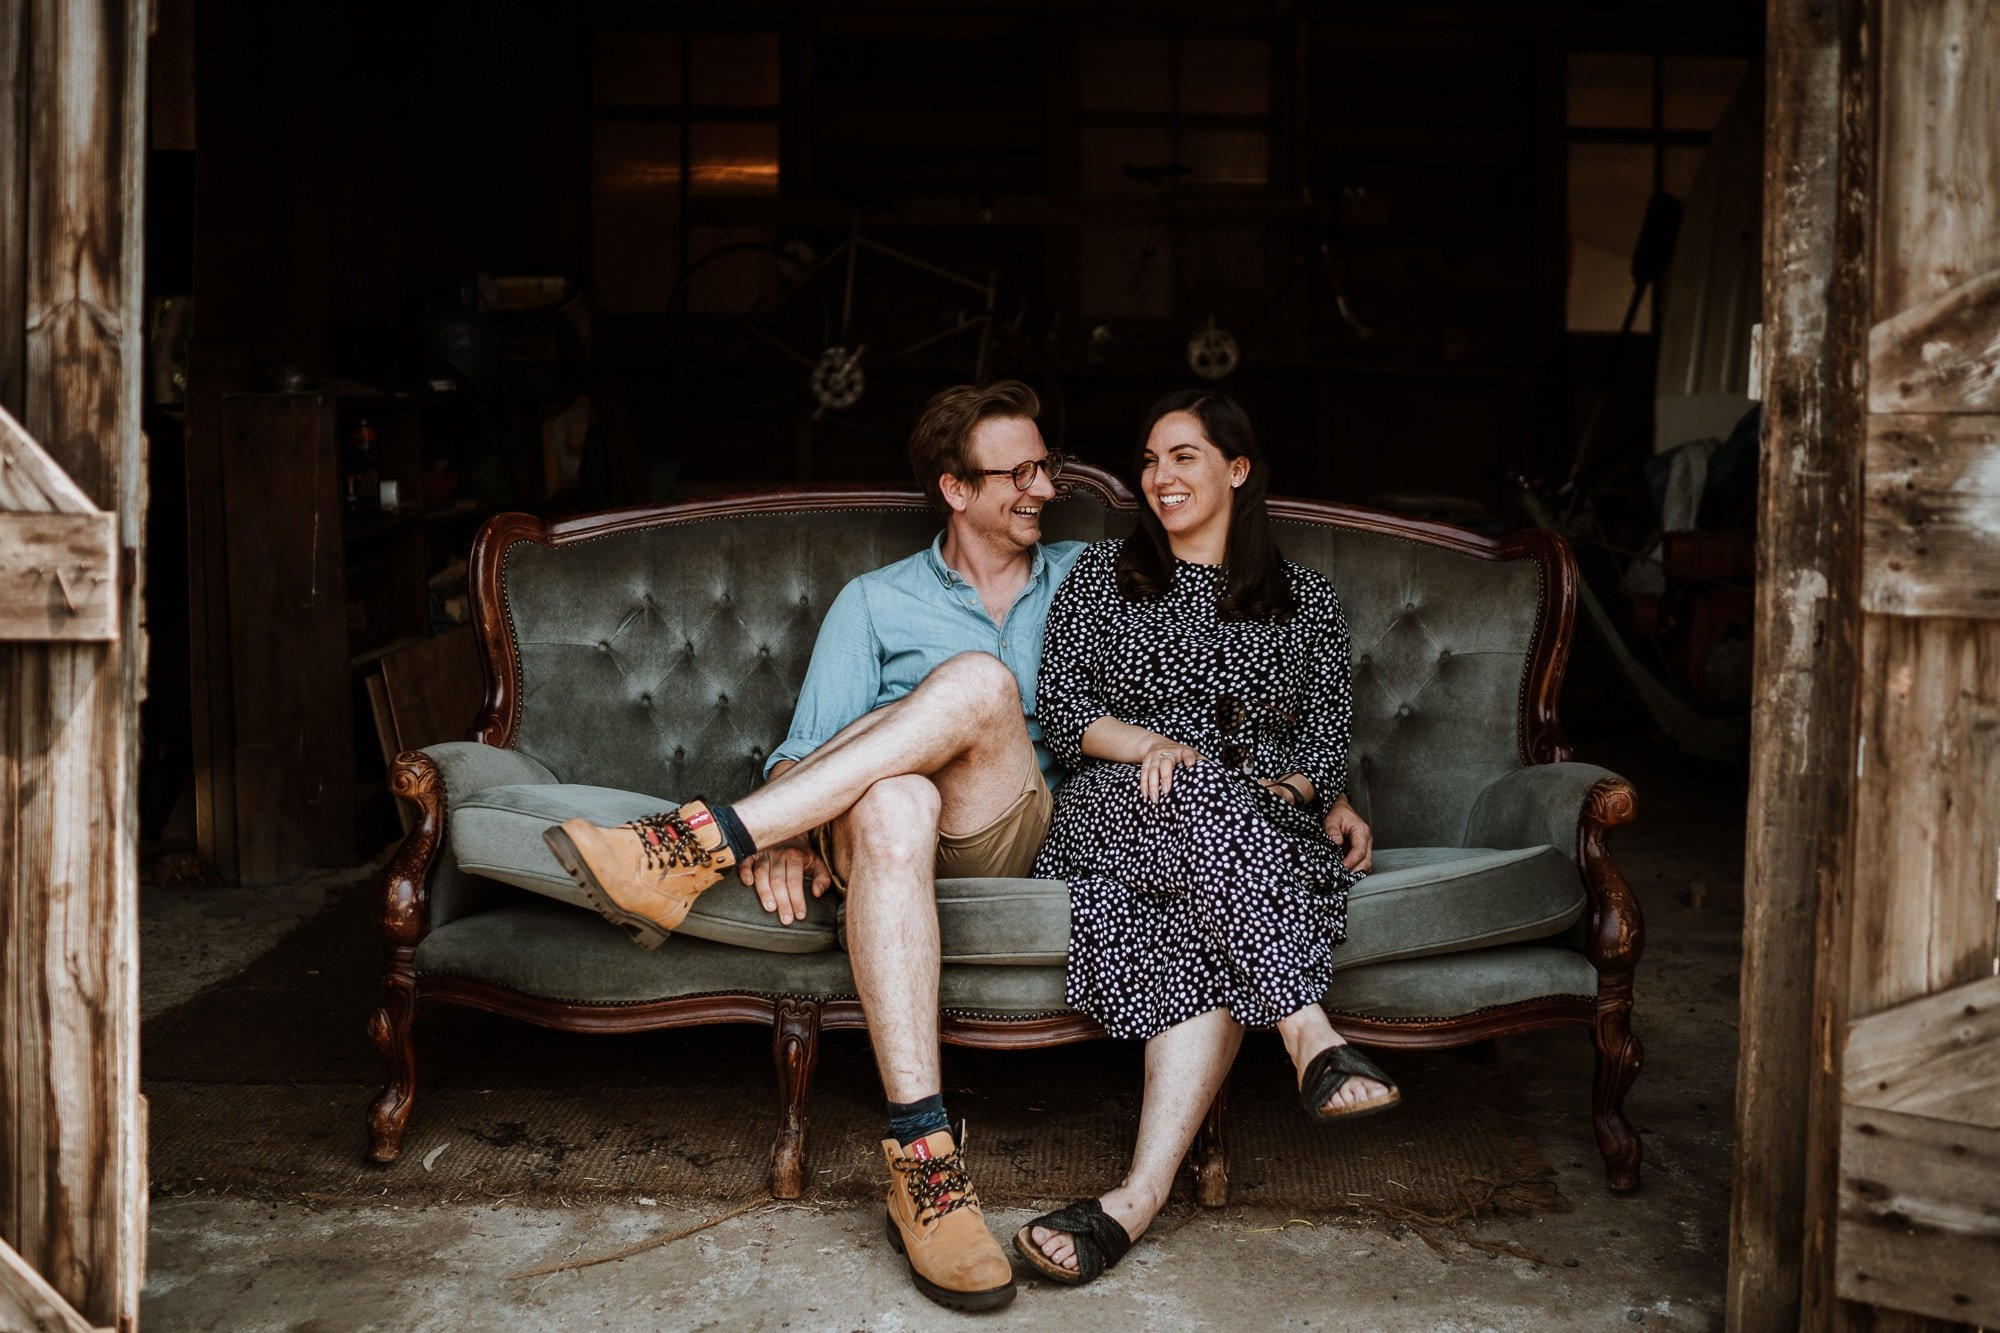 Roxanne and Ed from The Little Wedding Warehouse seated relaxed and laughing on grey sofa in rustic barn during their branding photoshoot